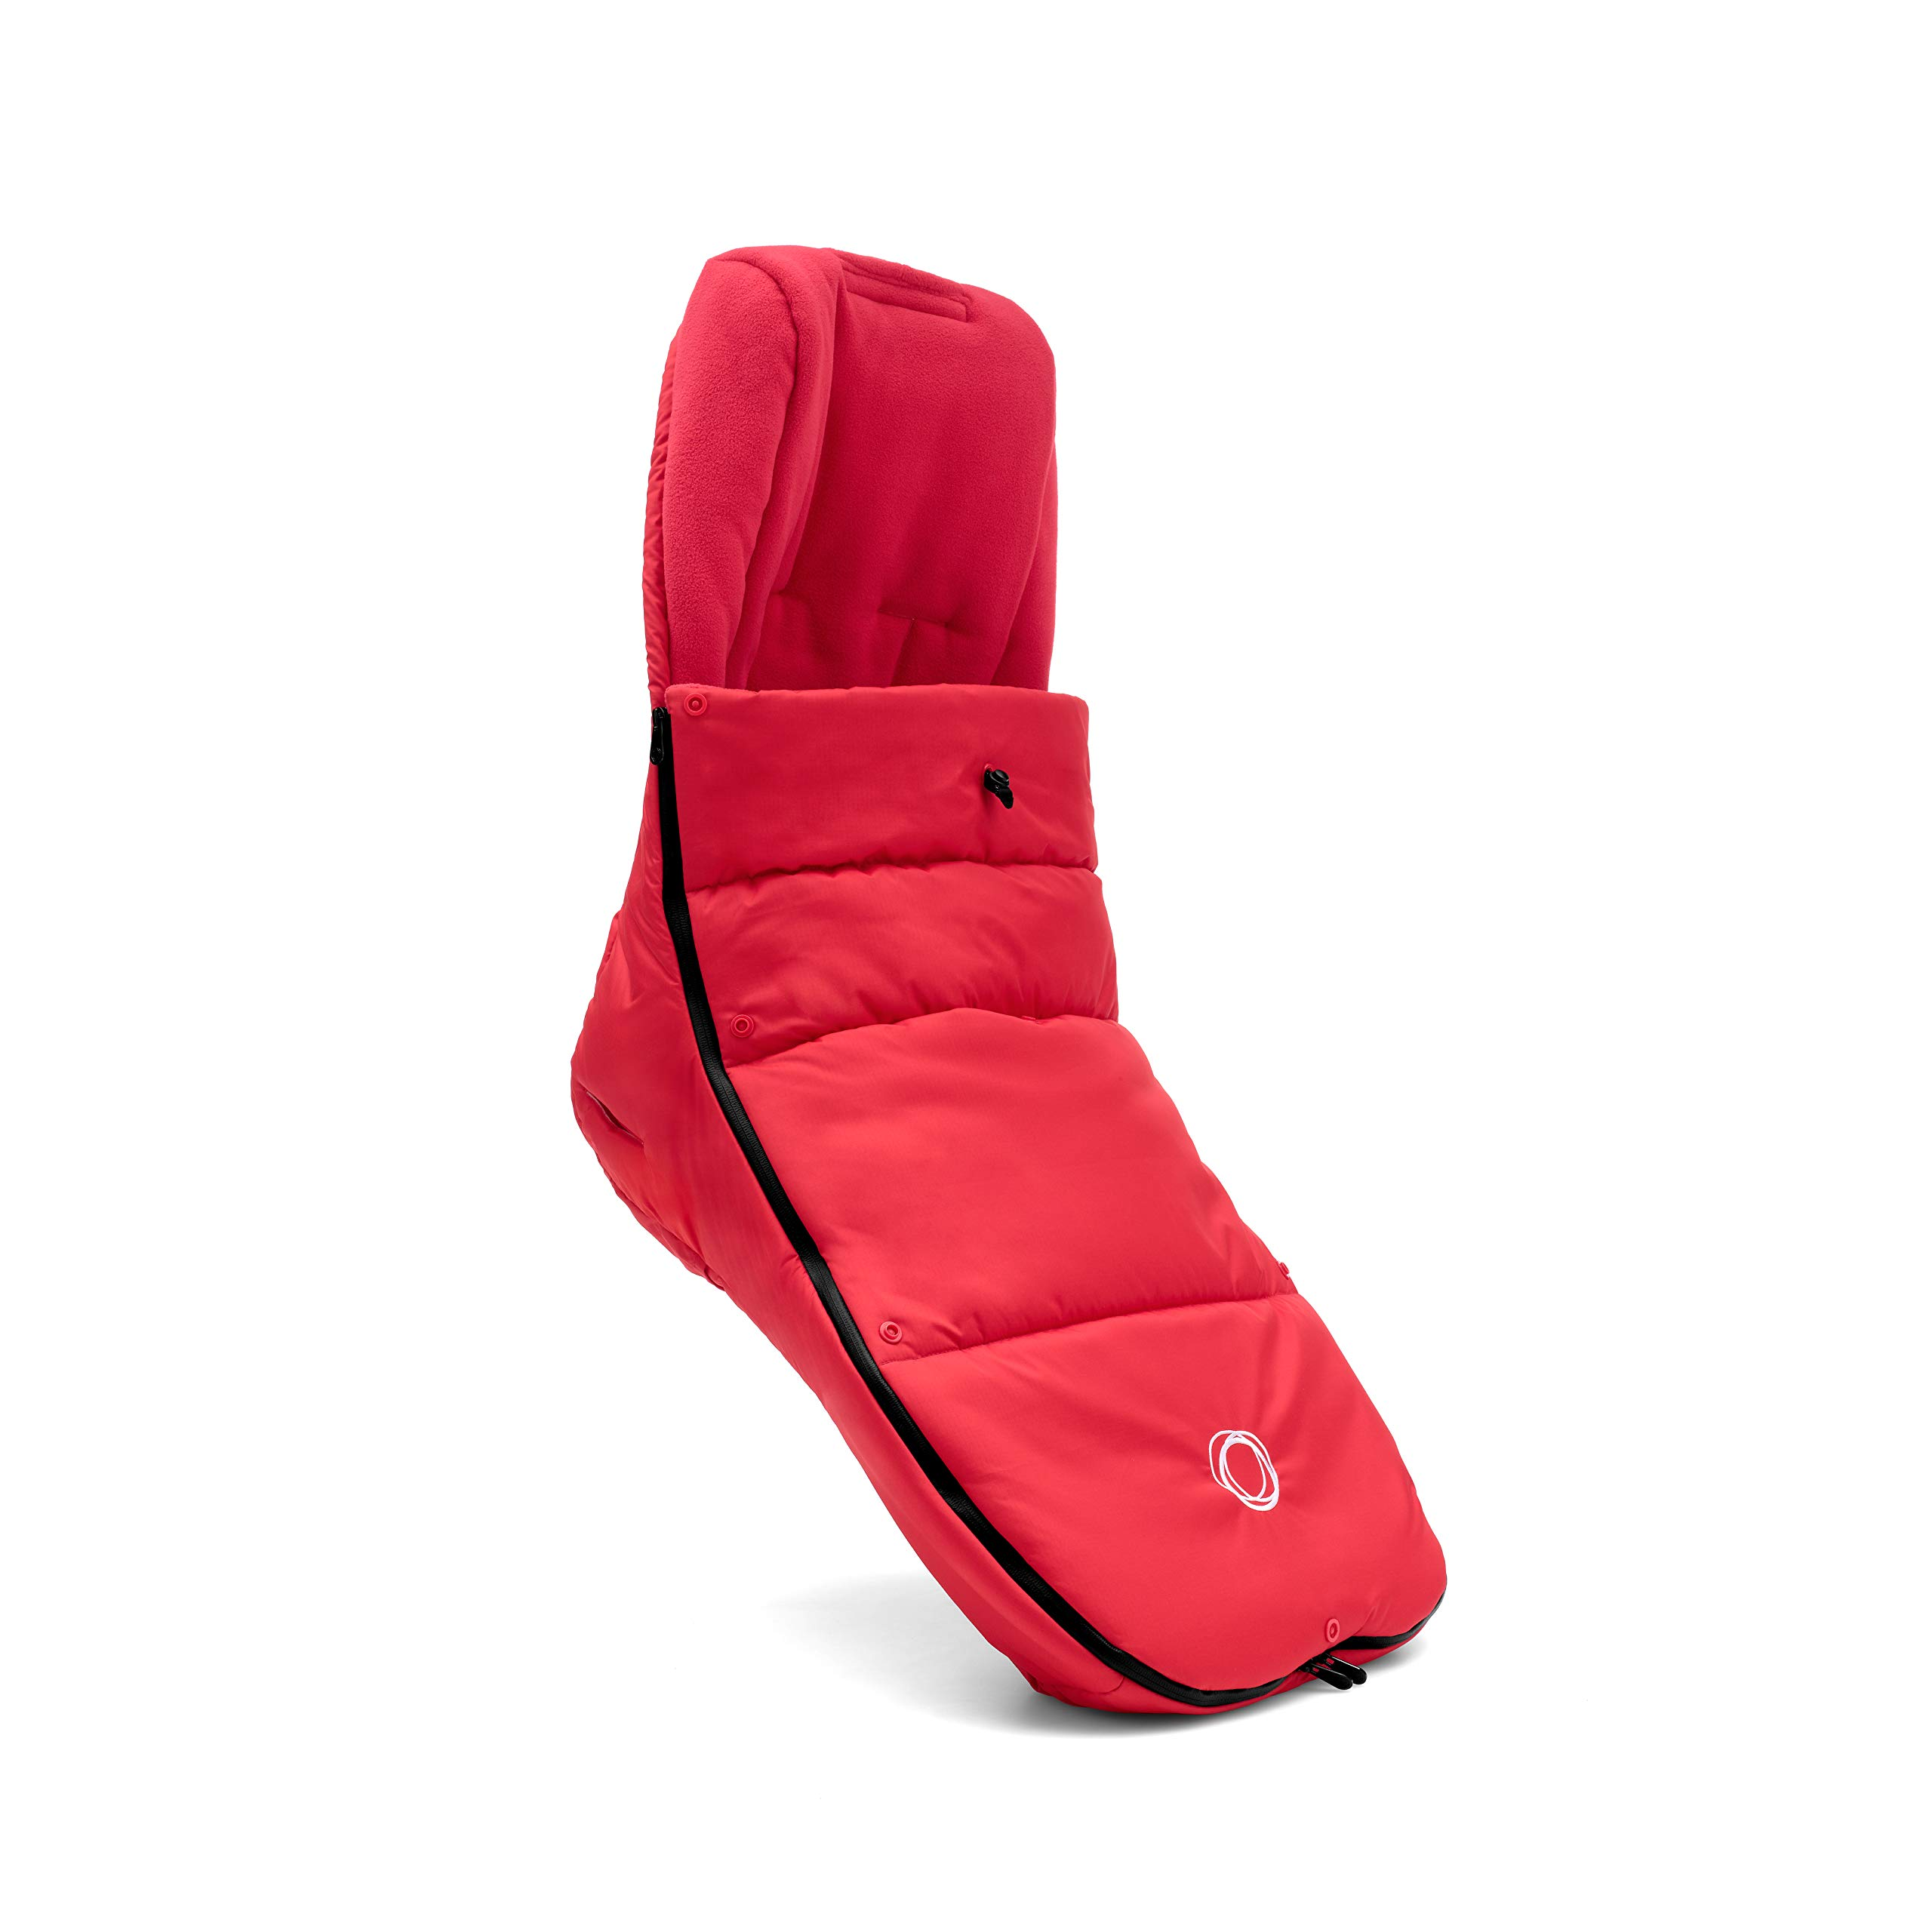 Bugaboo High Performance Footmuff, Neon Red - Down-Filled Cover to Keep Your Baby Warm and Protected During Winter Days - Universally Compatible with All Bugaboo Strollers, Neon Red